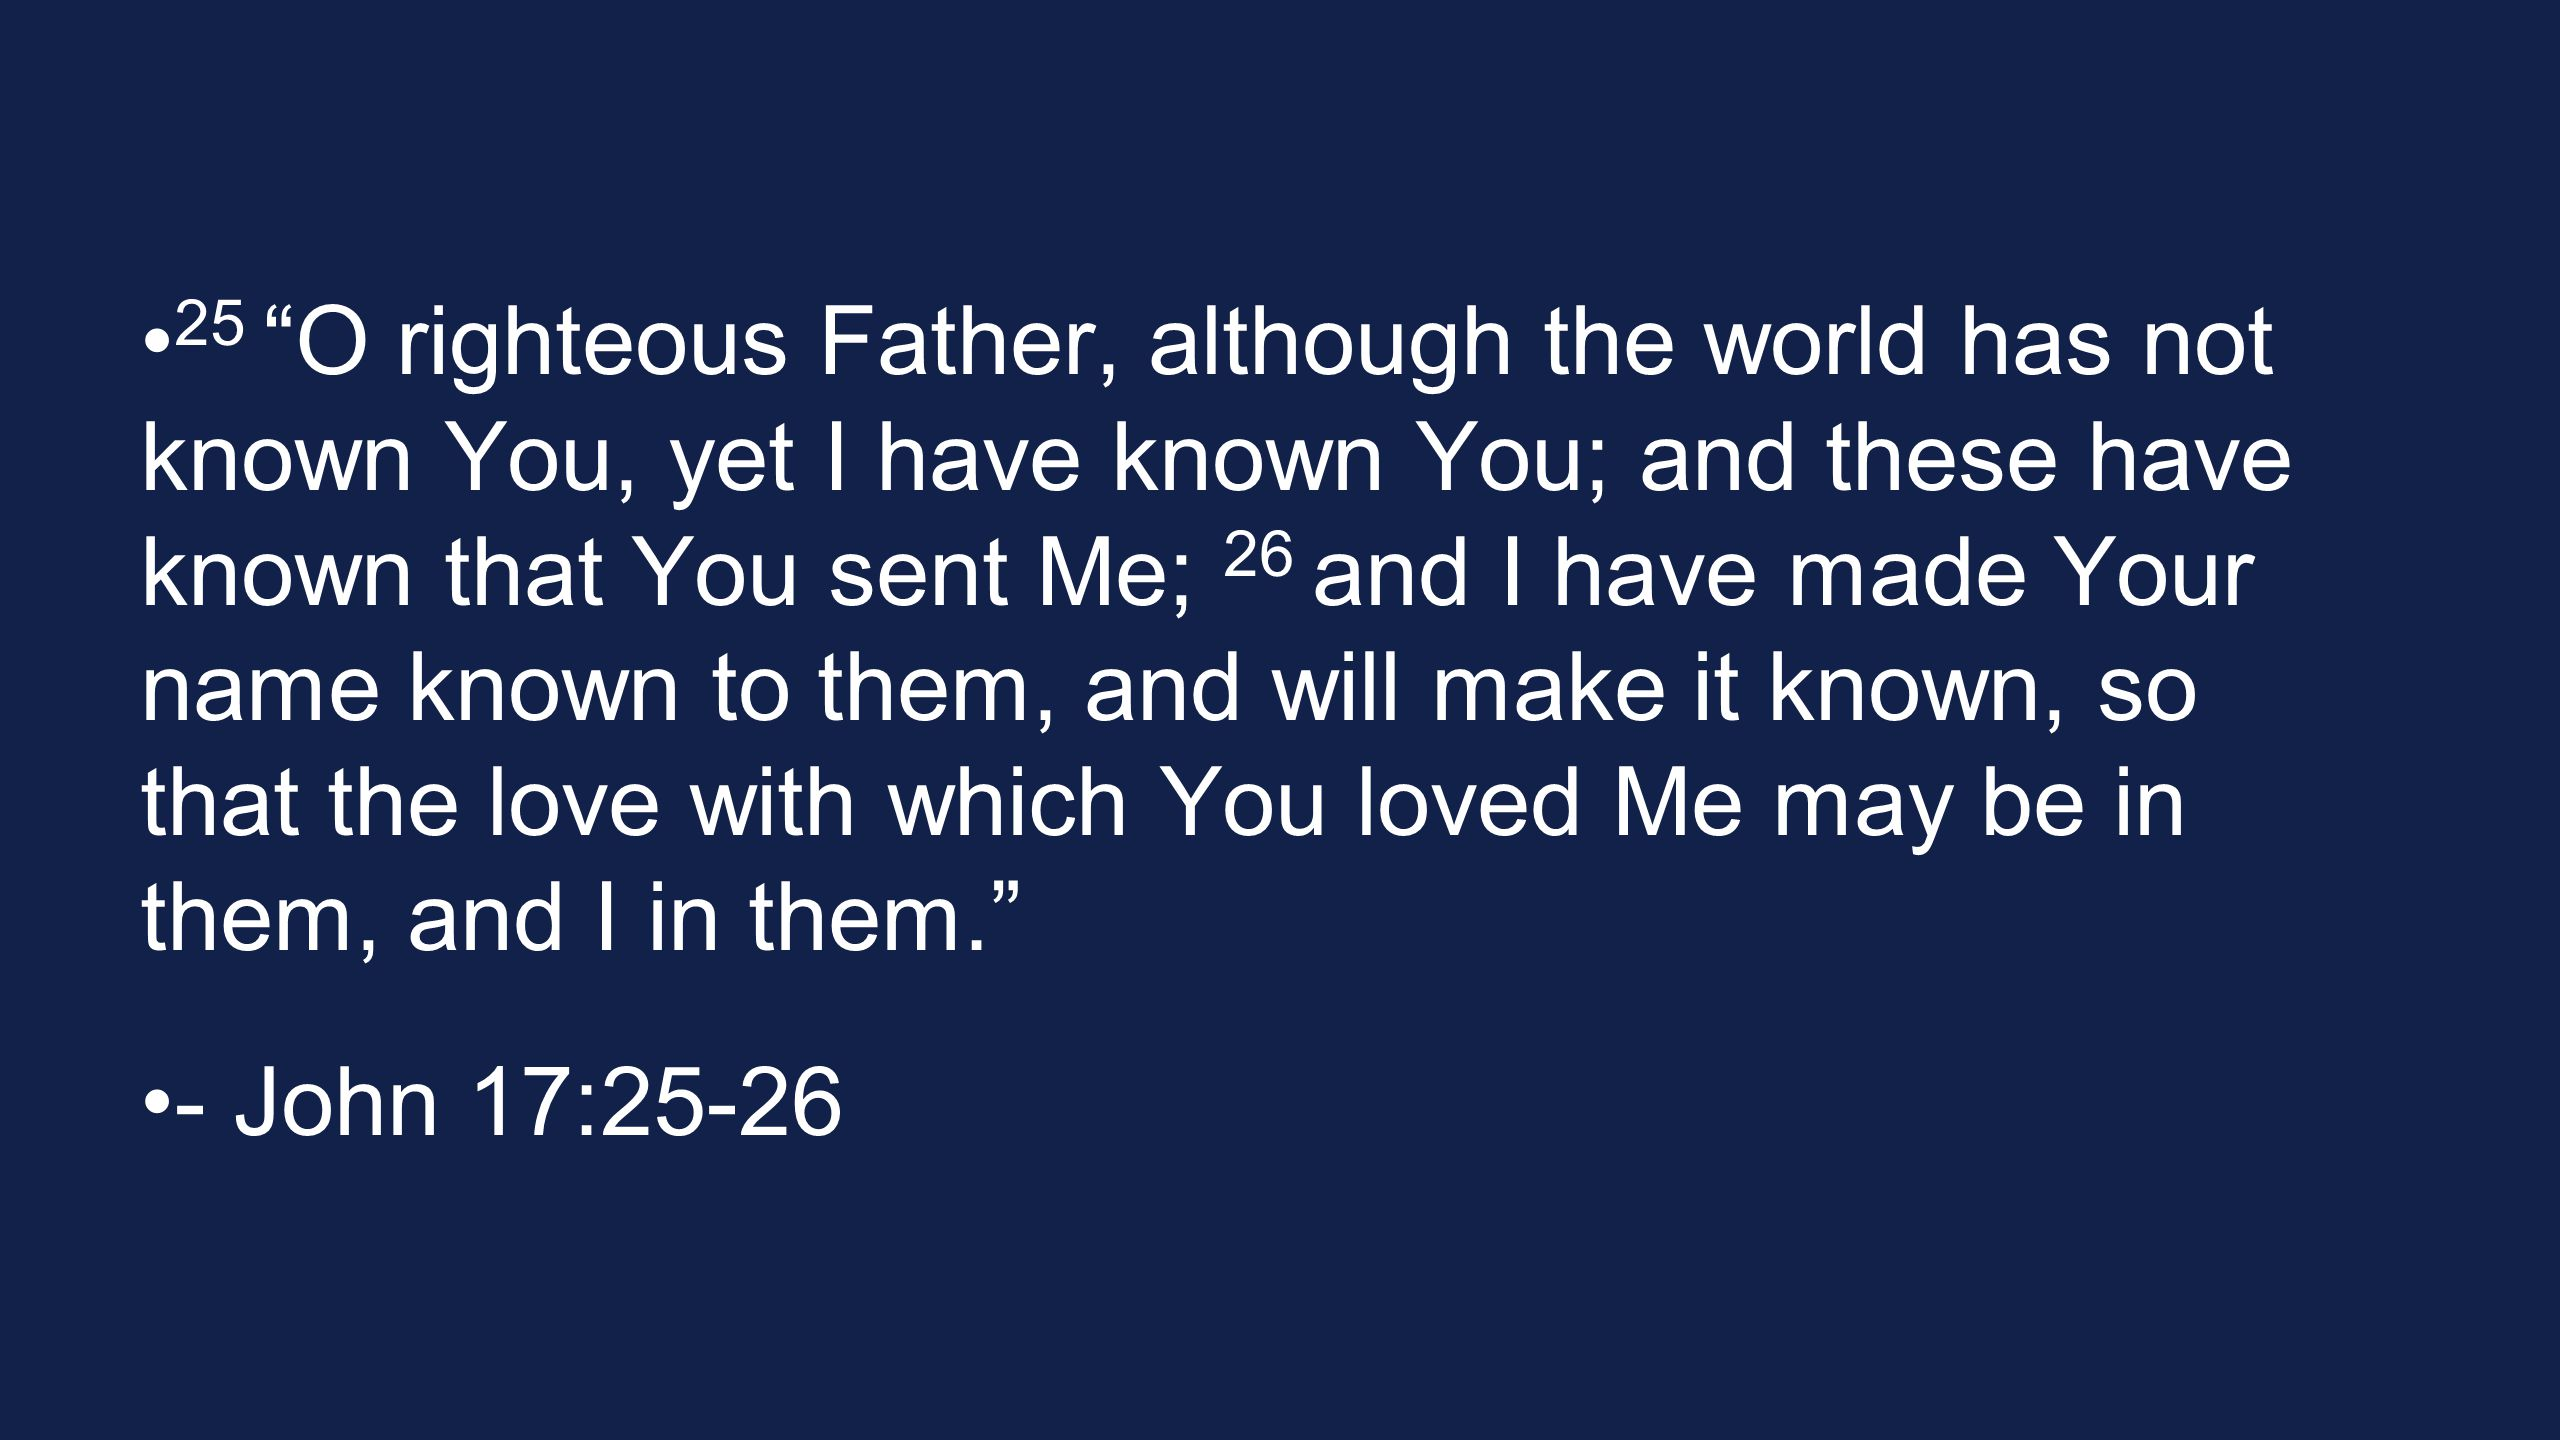 25 O righteous Father, although the world has not known You, yet I have known You; and these have known that You sent Me; 26 and I have made Your name known to them, and will make it known, so that the love with which You loved Me may be in them, and I in them.